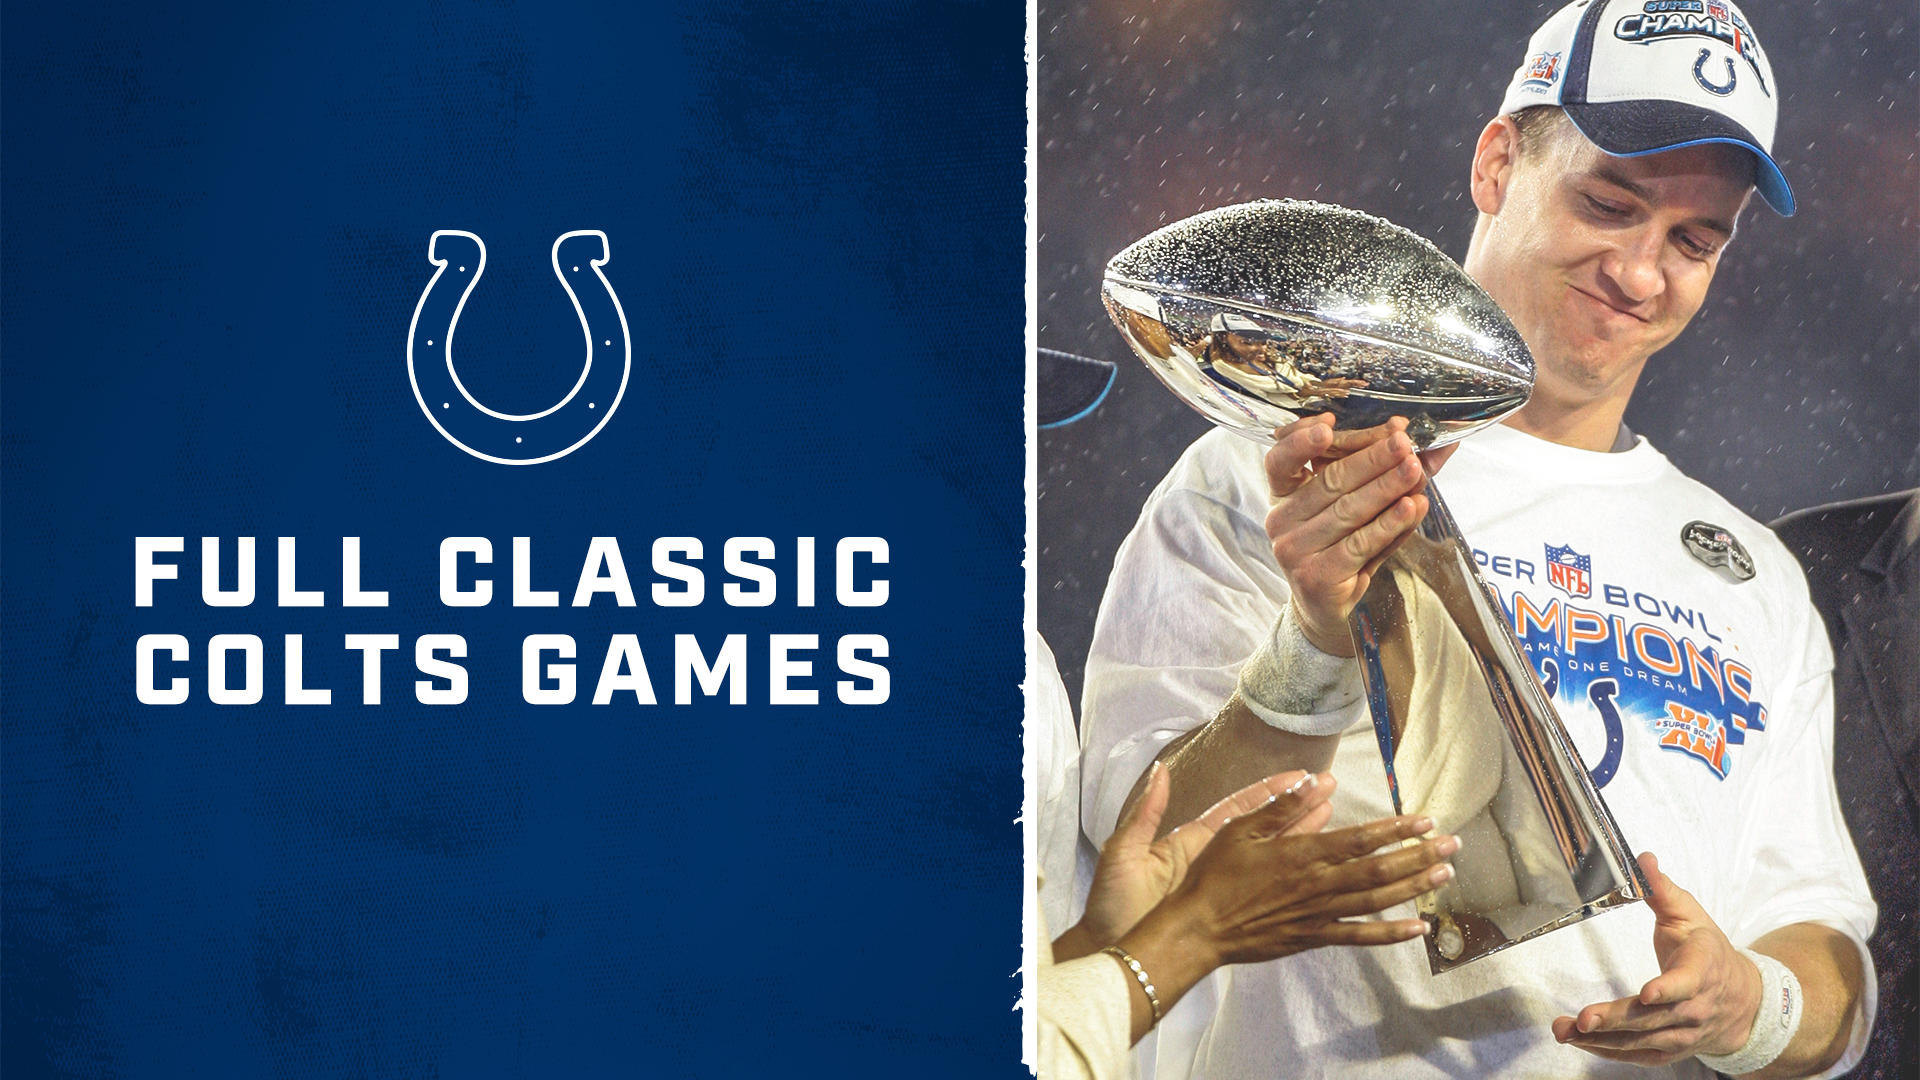 Full Classic Colts Games